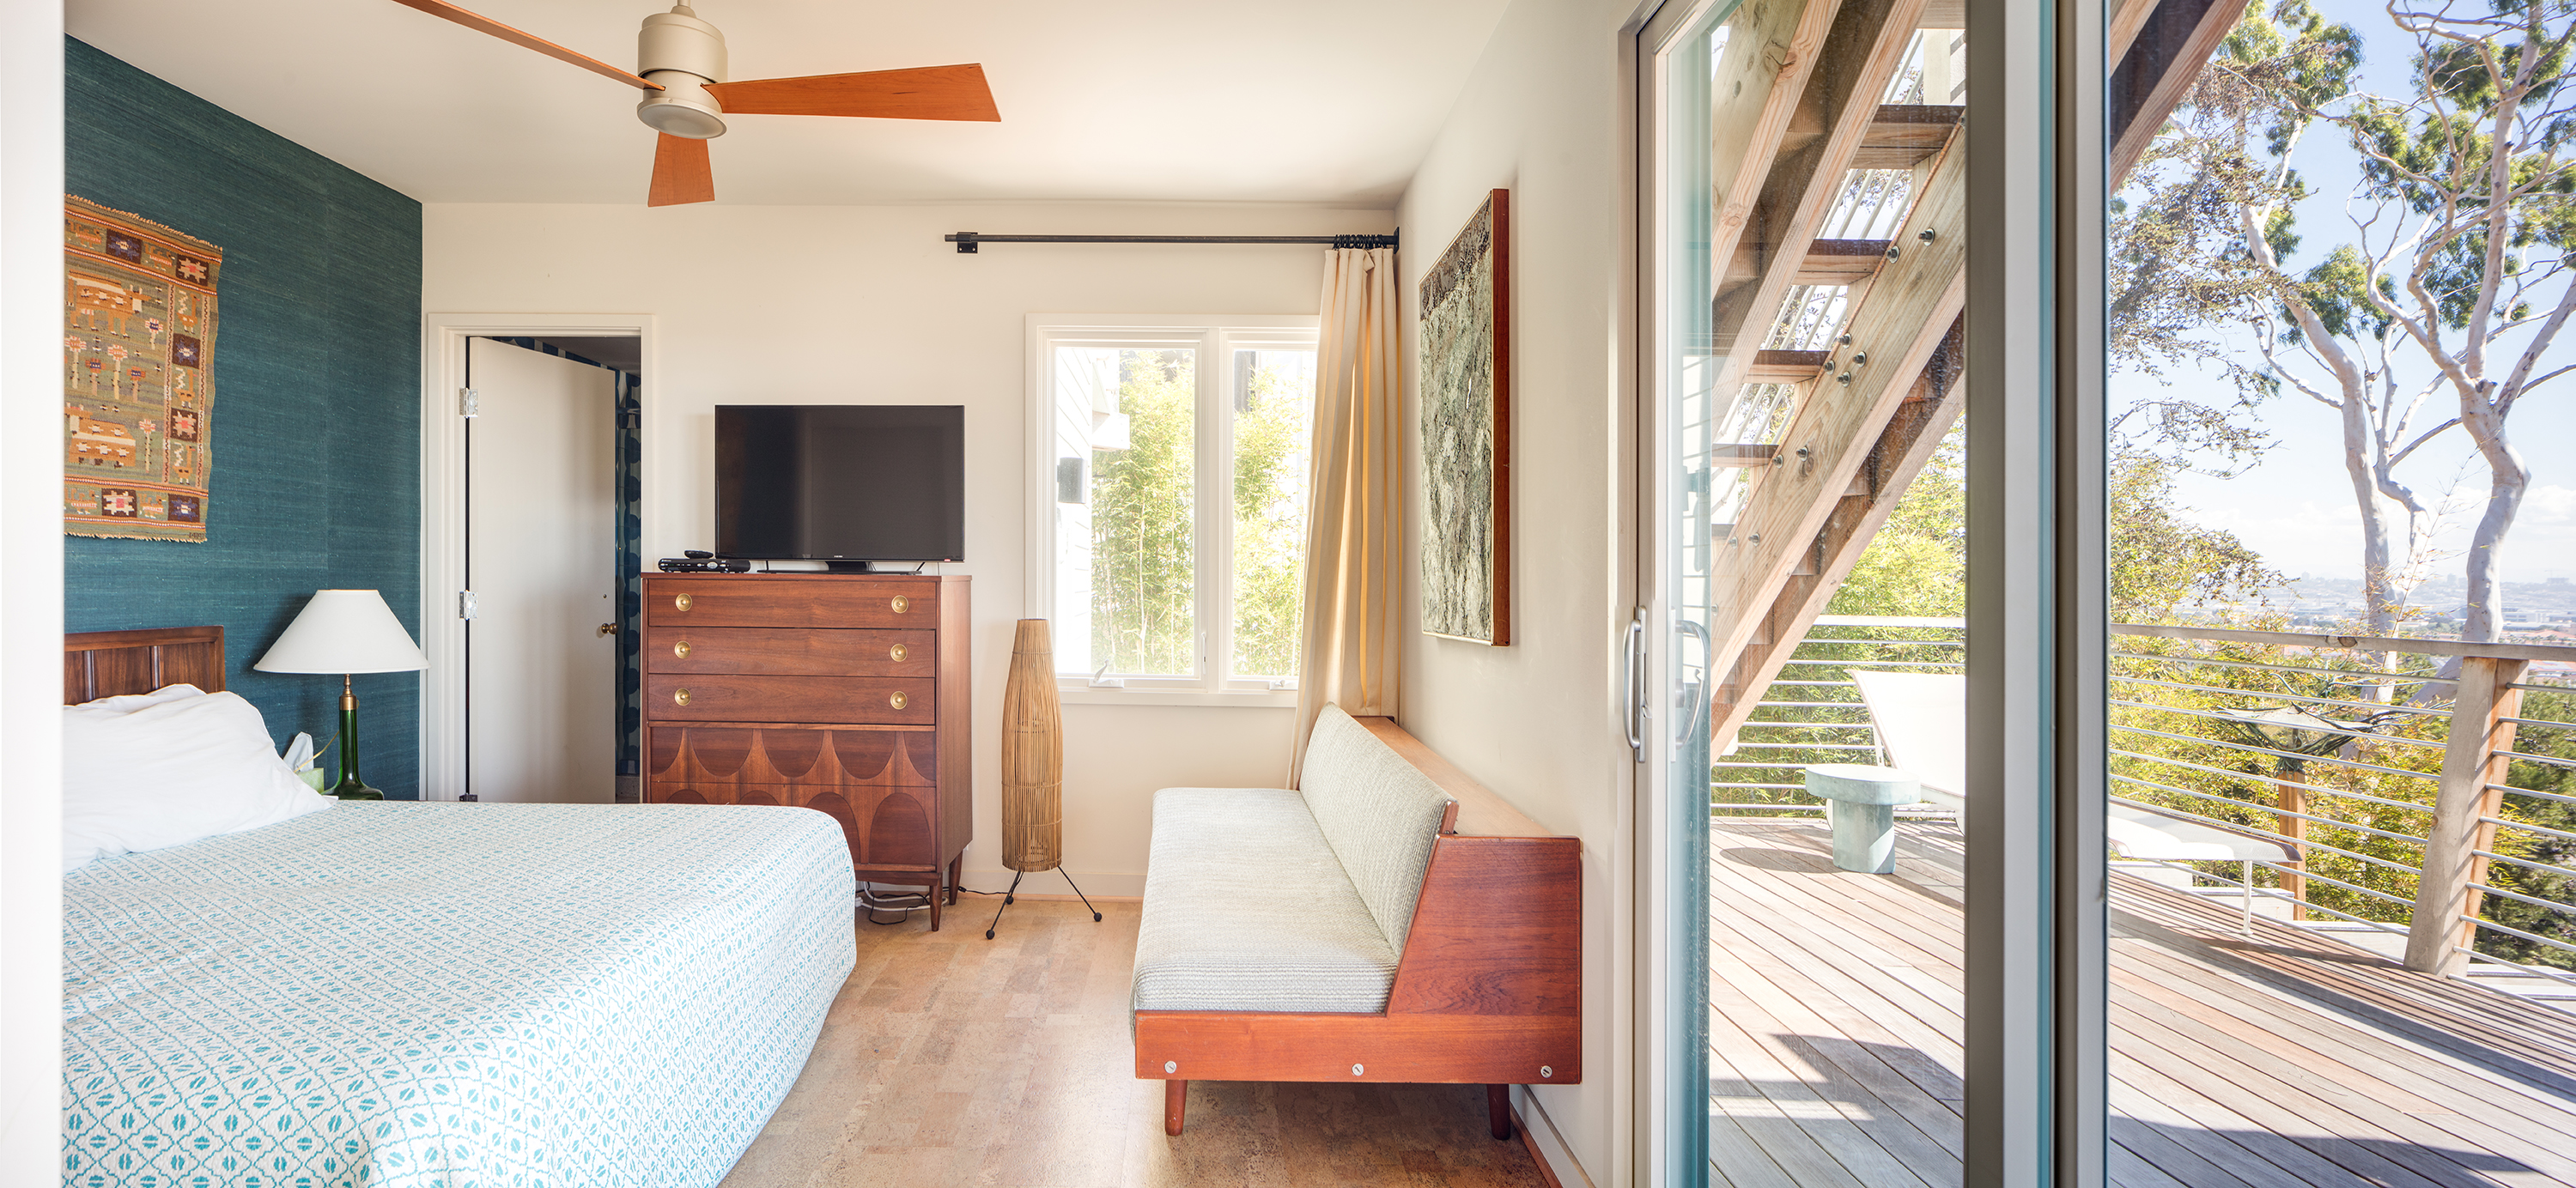 The New Deck Gives This Lower Level Bedroom A Connection To Outdoors That Makes It Feel Larger